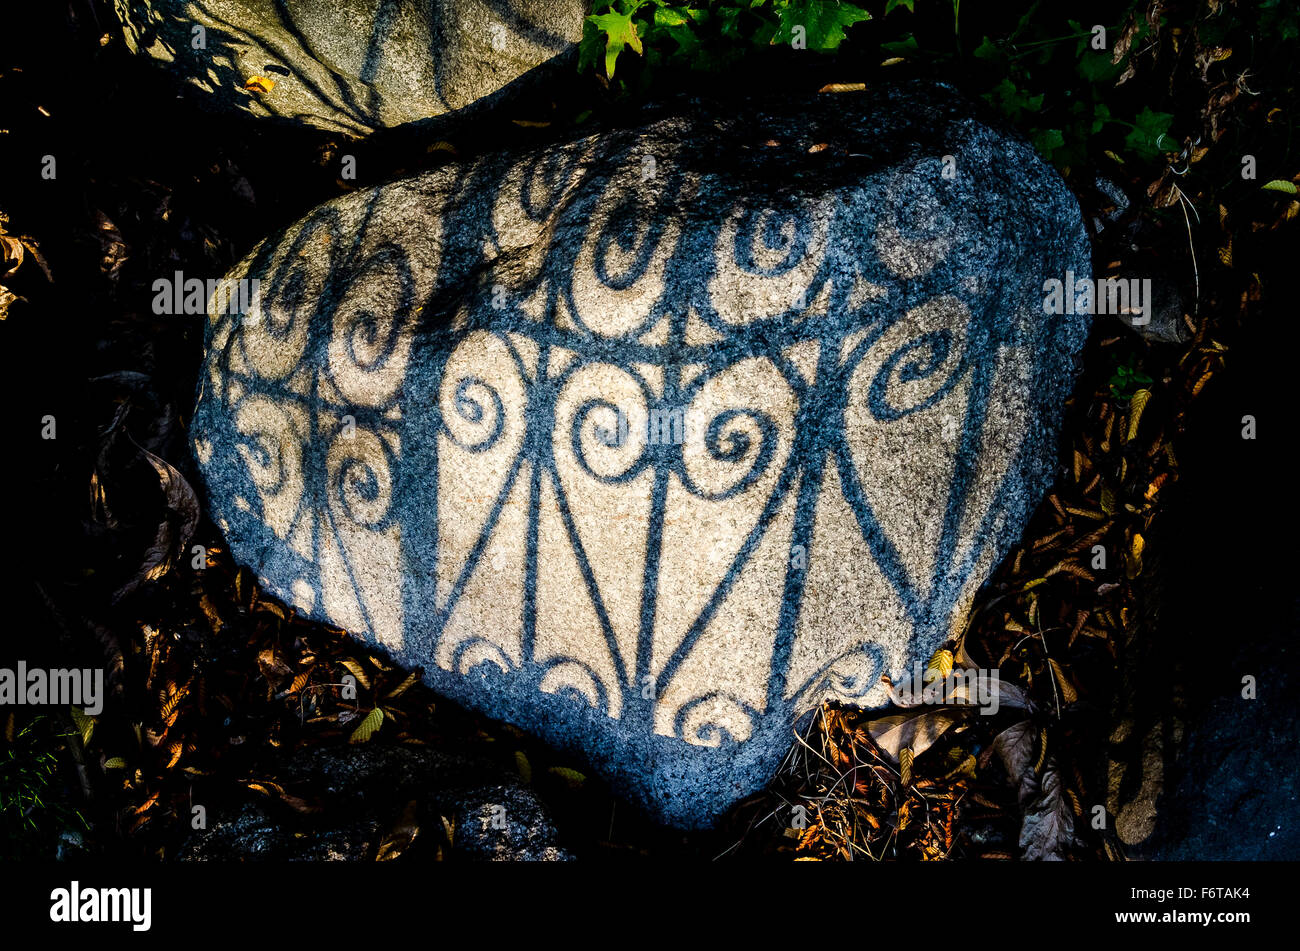 Shadow of wrought iron fence on rock - Stock Image